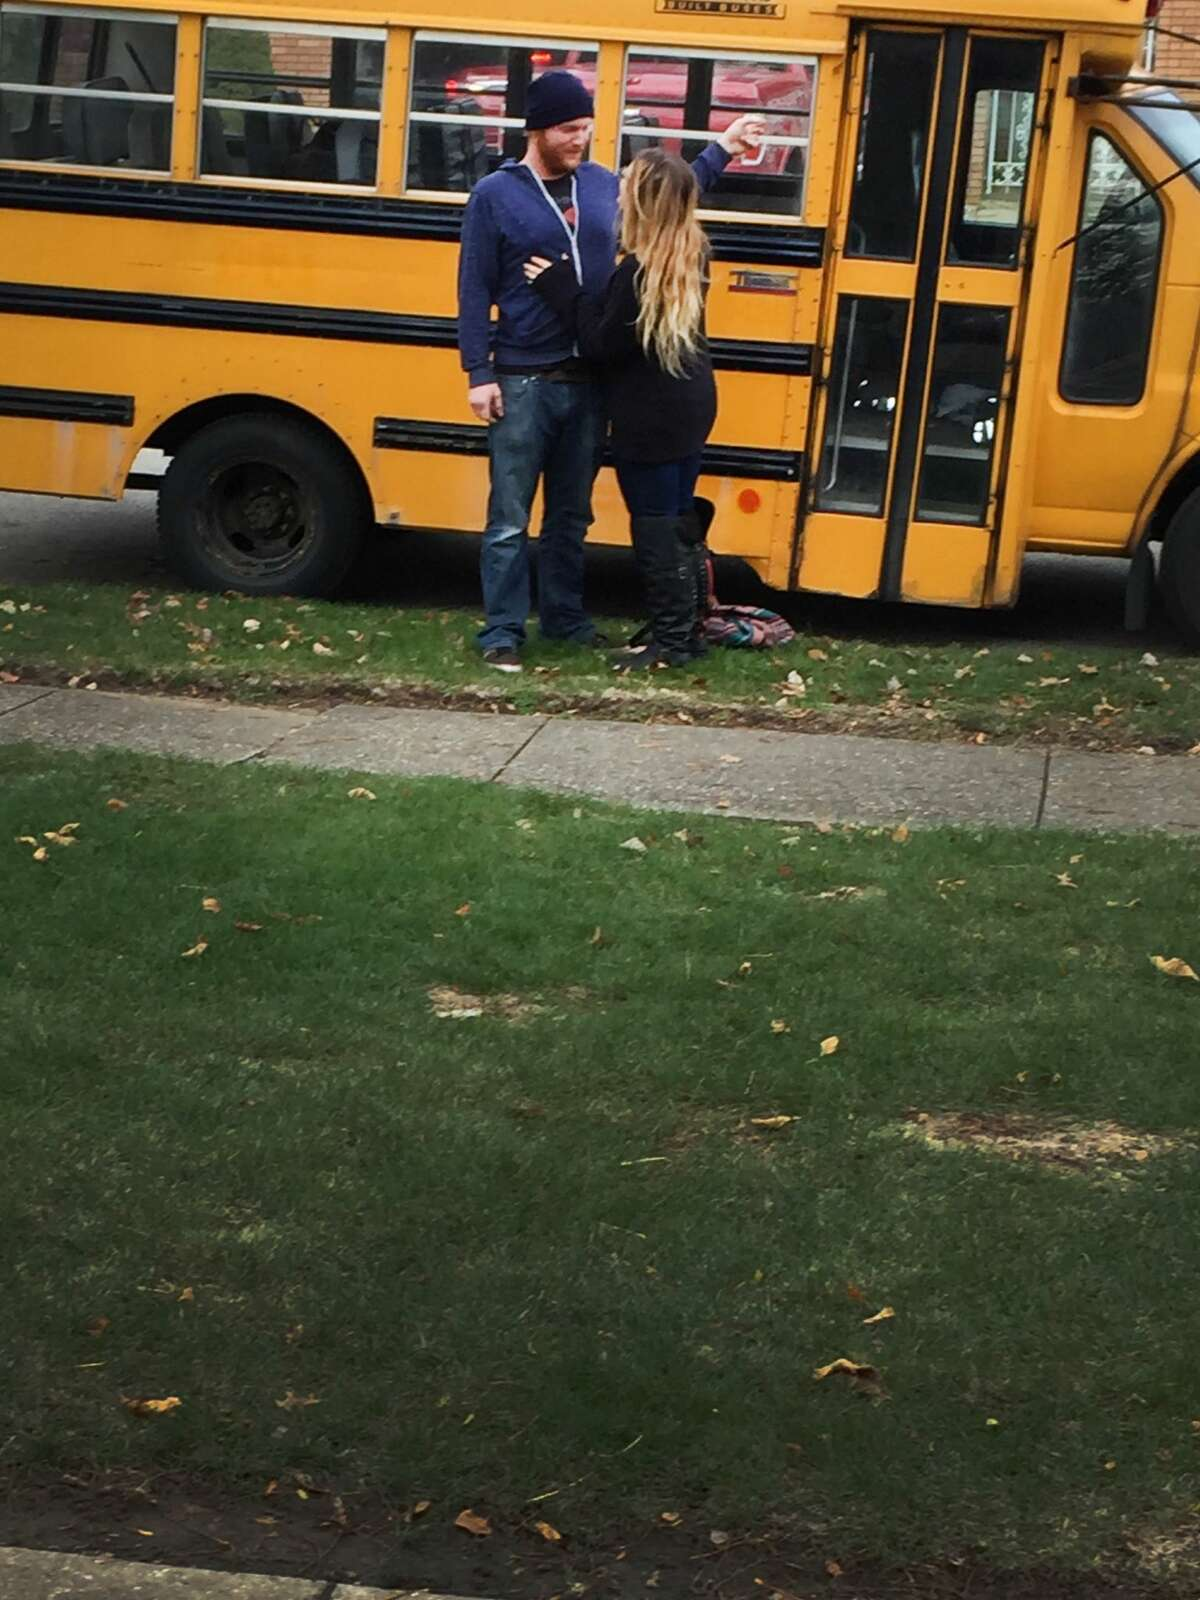 When the couple first got the bus, it was still painted that signature school bus yellow.